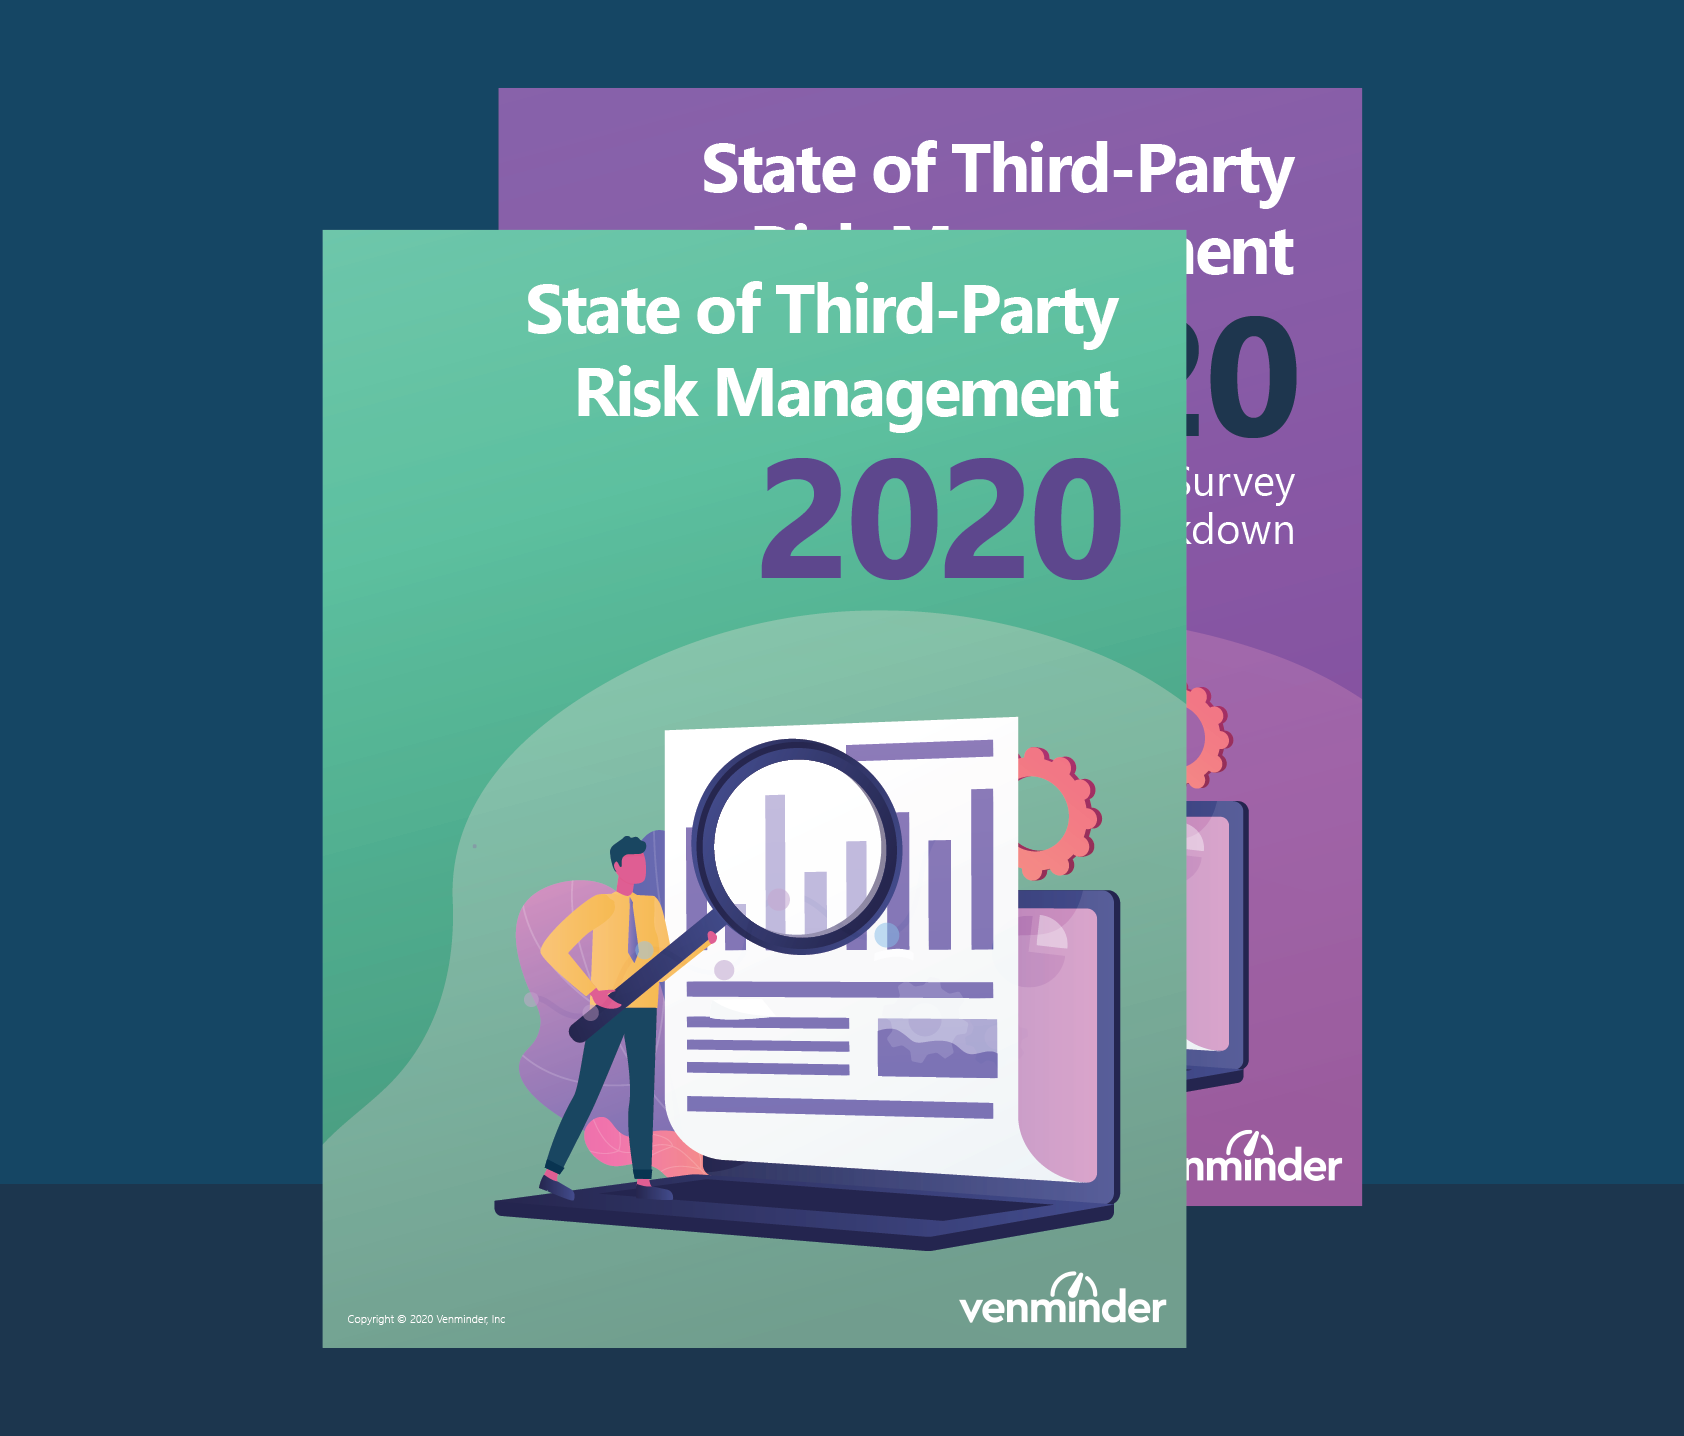 2020 state of third party risk management resources